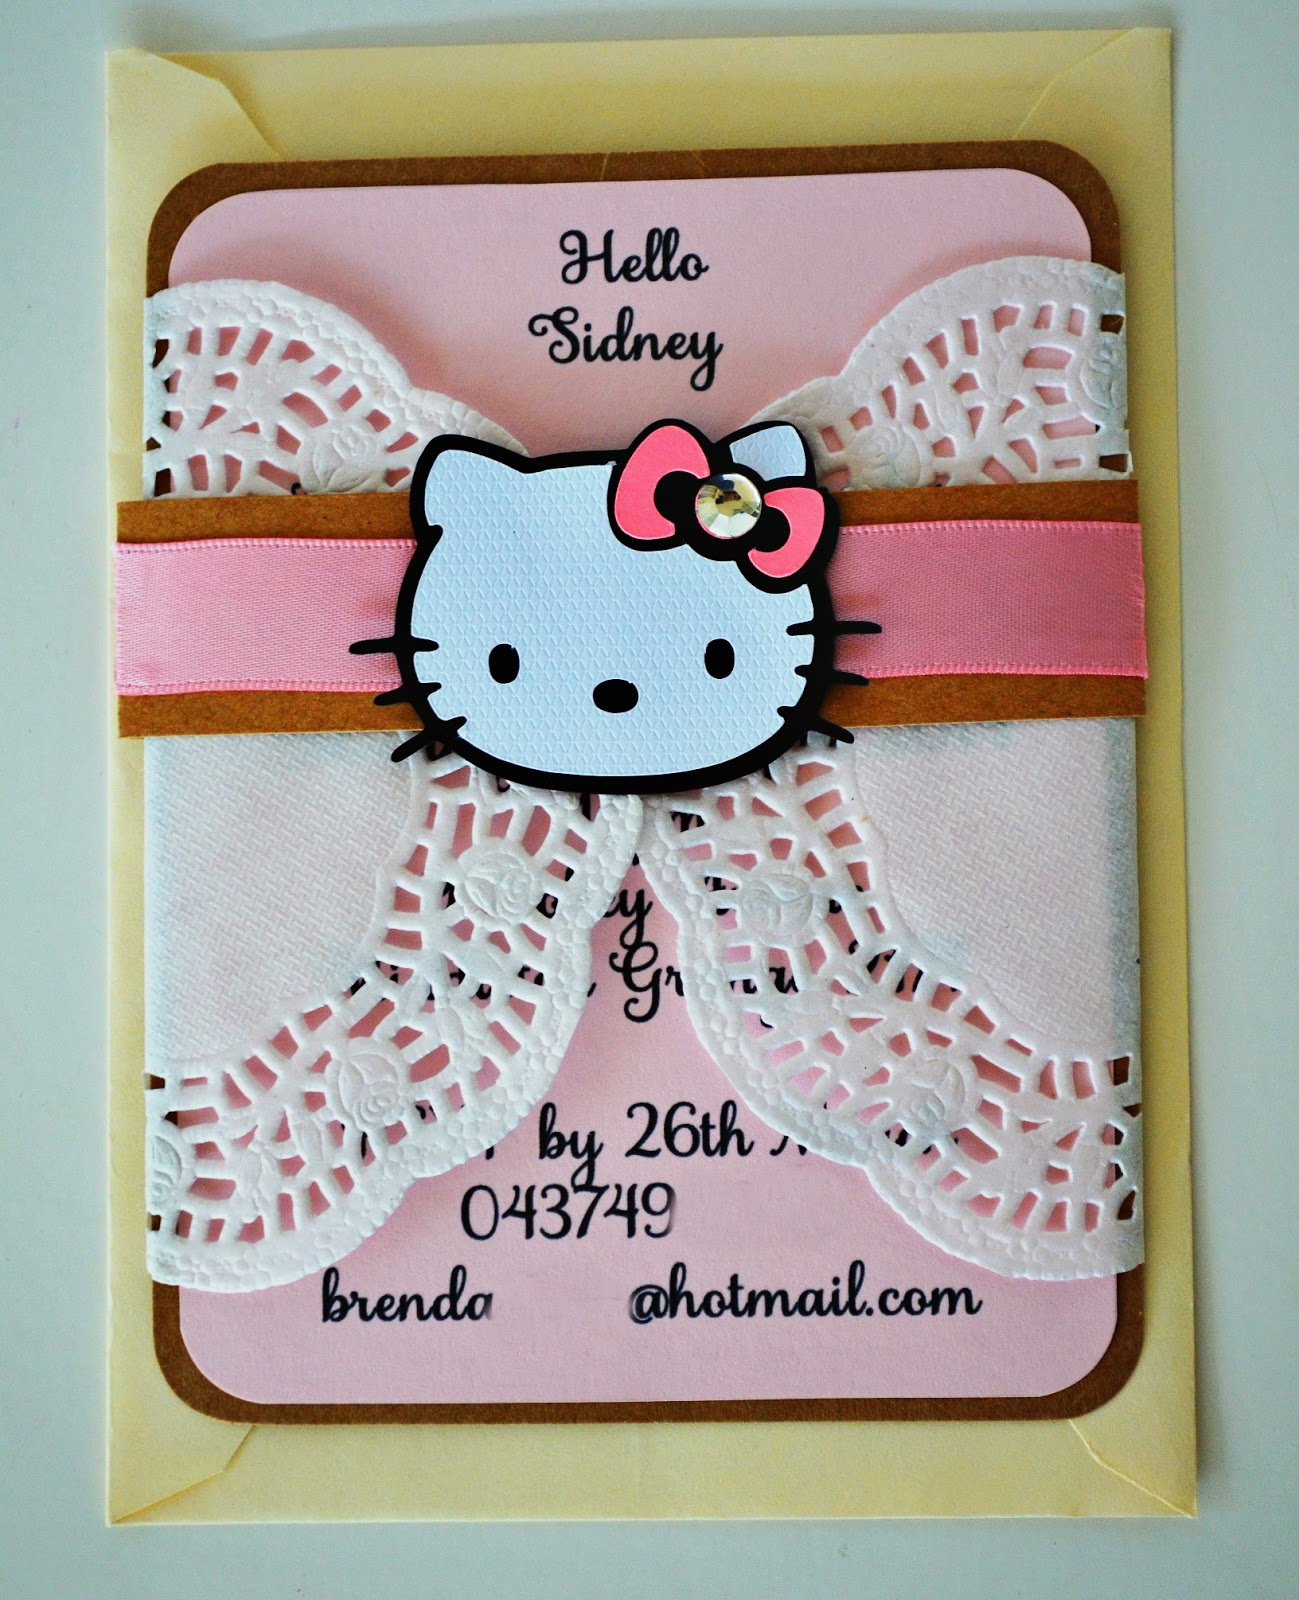 hello kitty doily birthday invitations 1 JPG 1299—1600